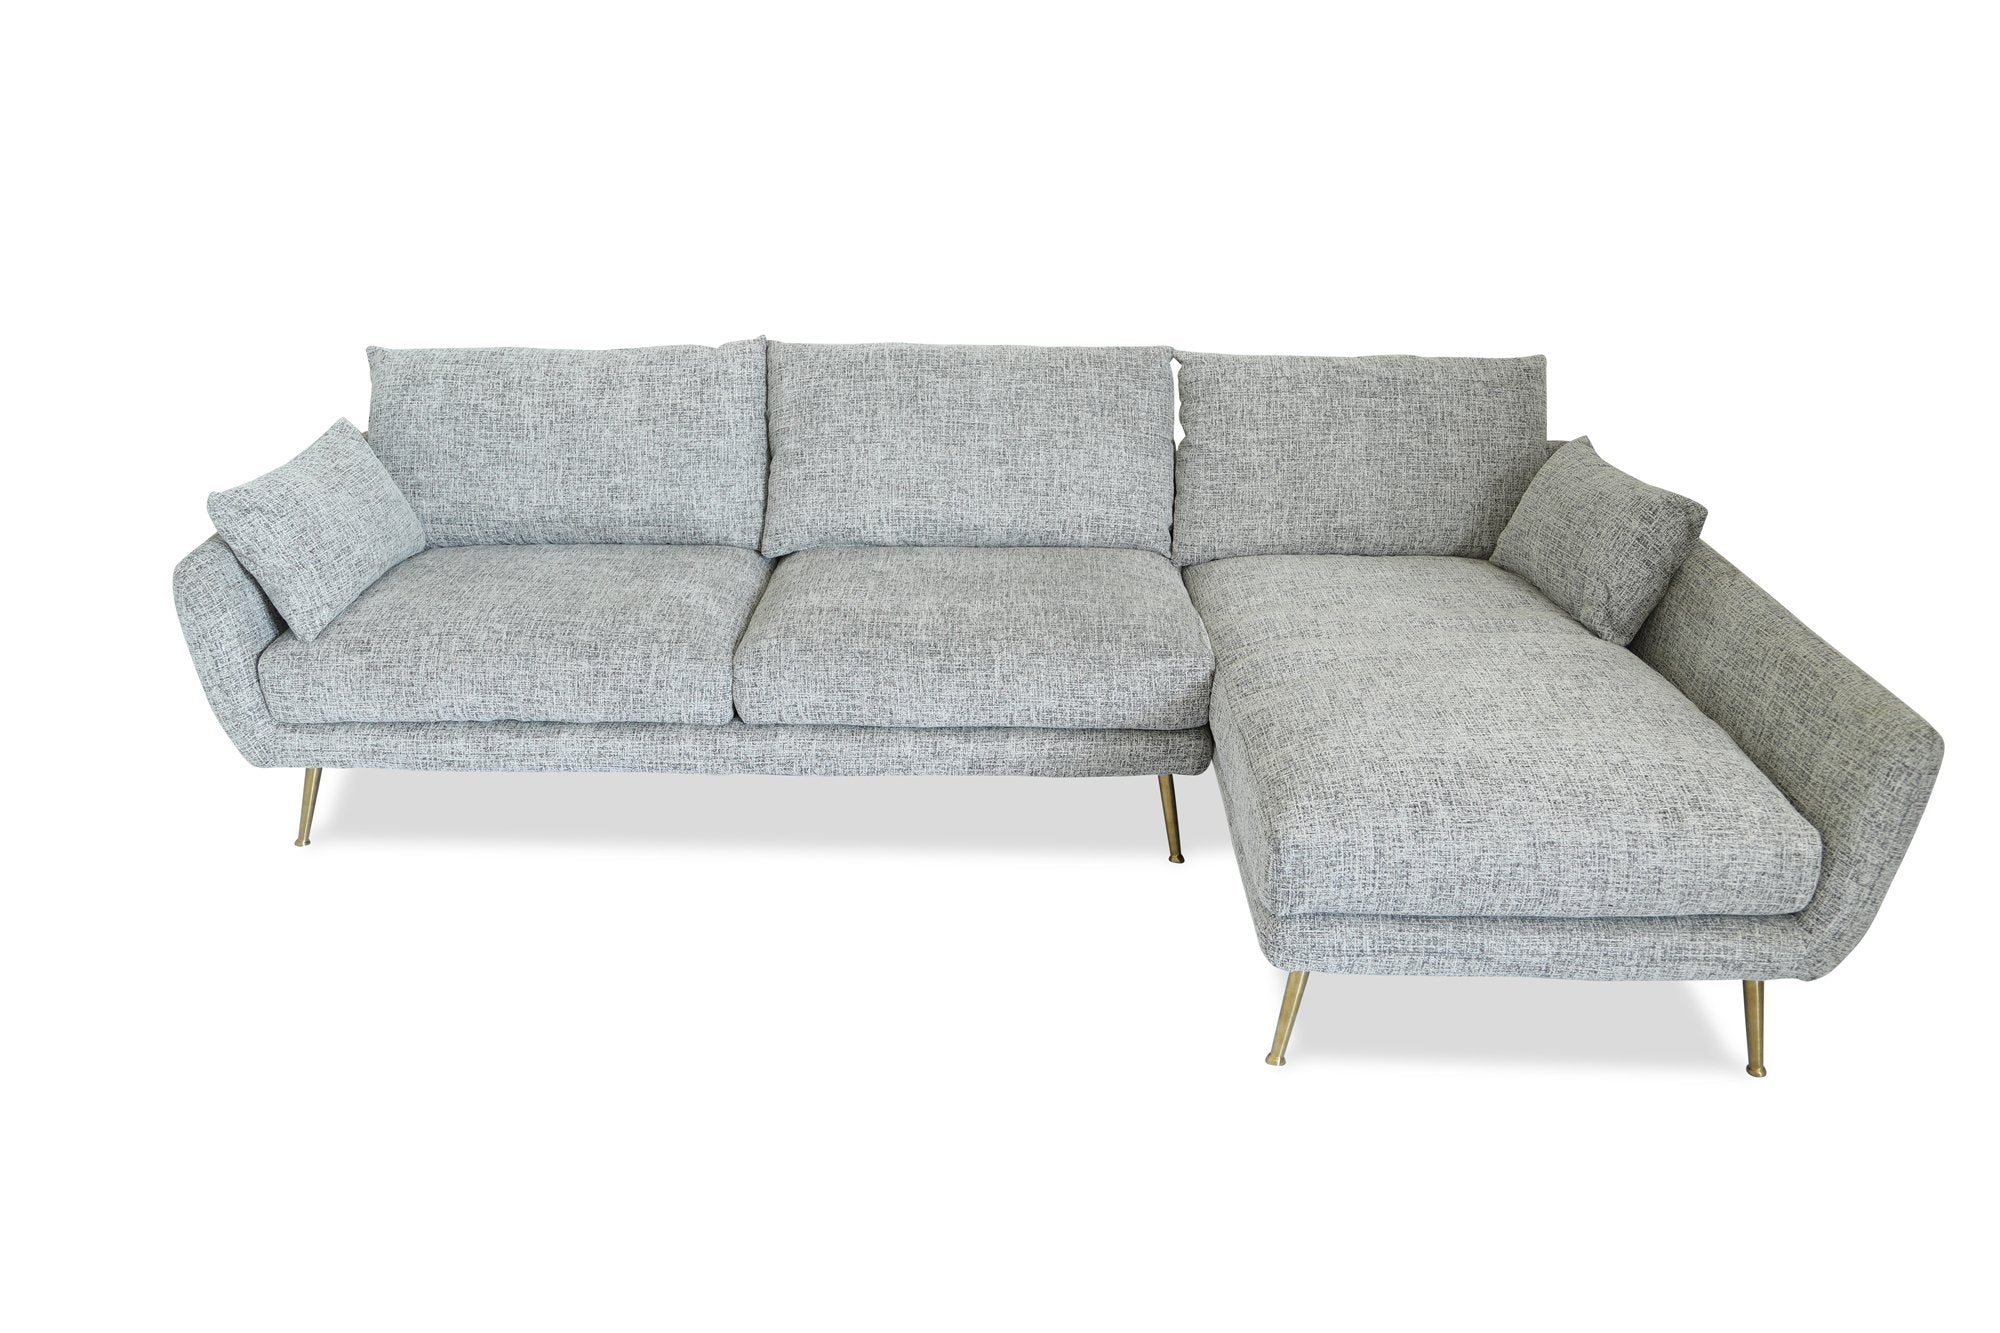 Magnificent Buy Edloe Finch Ef Zx Sc002R Harlow Mid Century Modern Sectional Sofa Fulton Grey Right Facing At Contemporary Furniture Warehouse Gamerscity Chair Design For Home Gamerscityorg